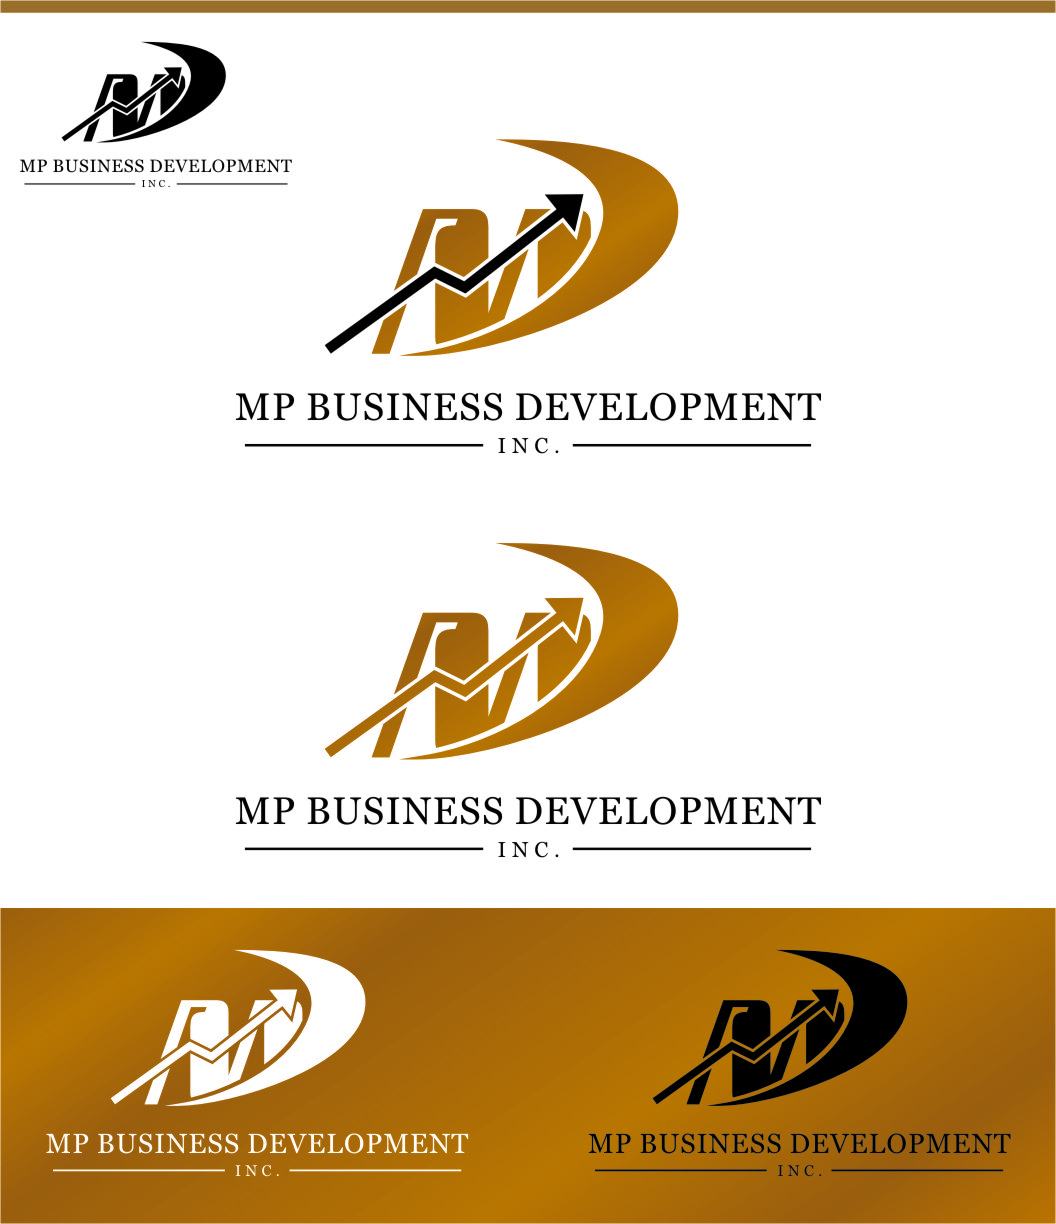 Logo Design by Ngepet_art - Entry No. 149 in the Logo Design Contest MP Business Development Inc. Logo Design.